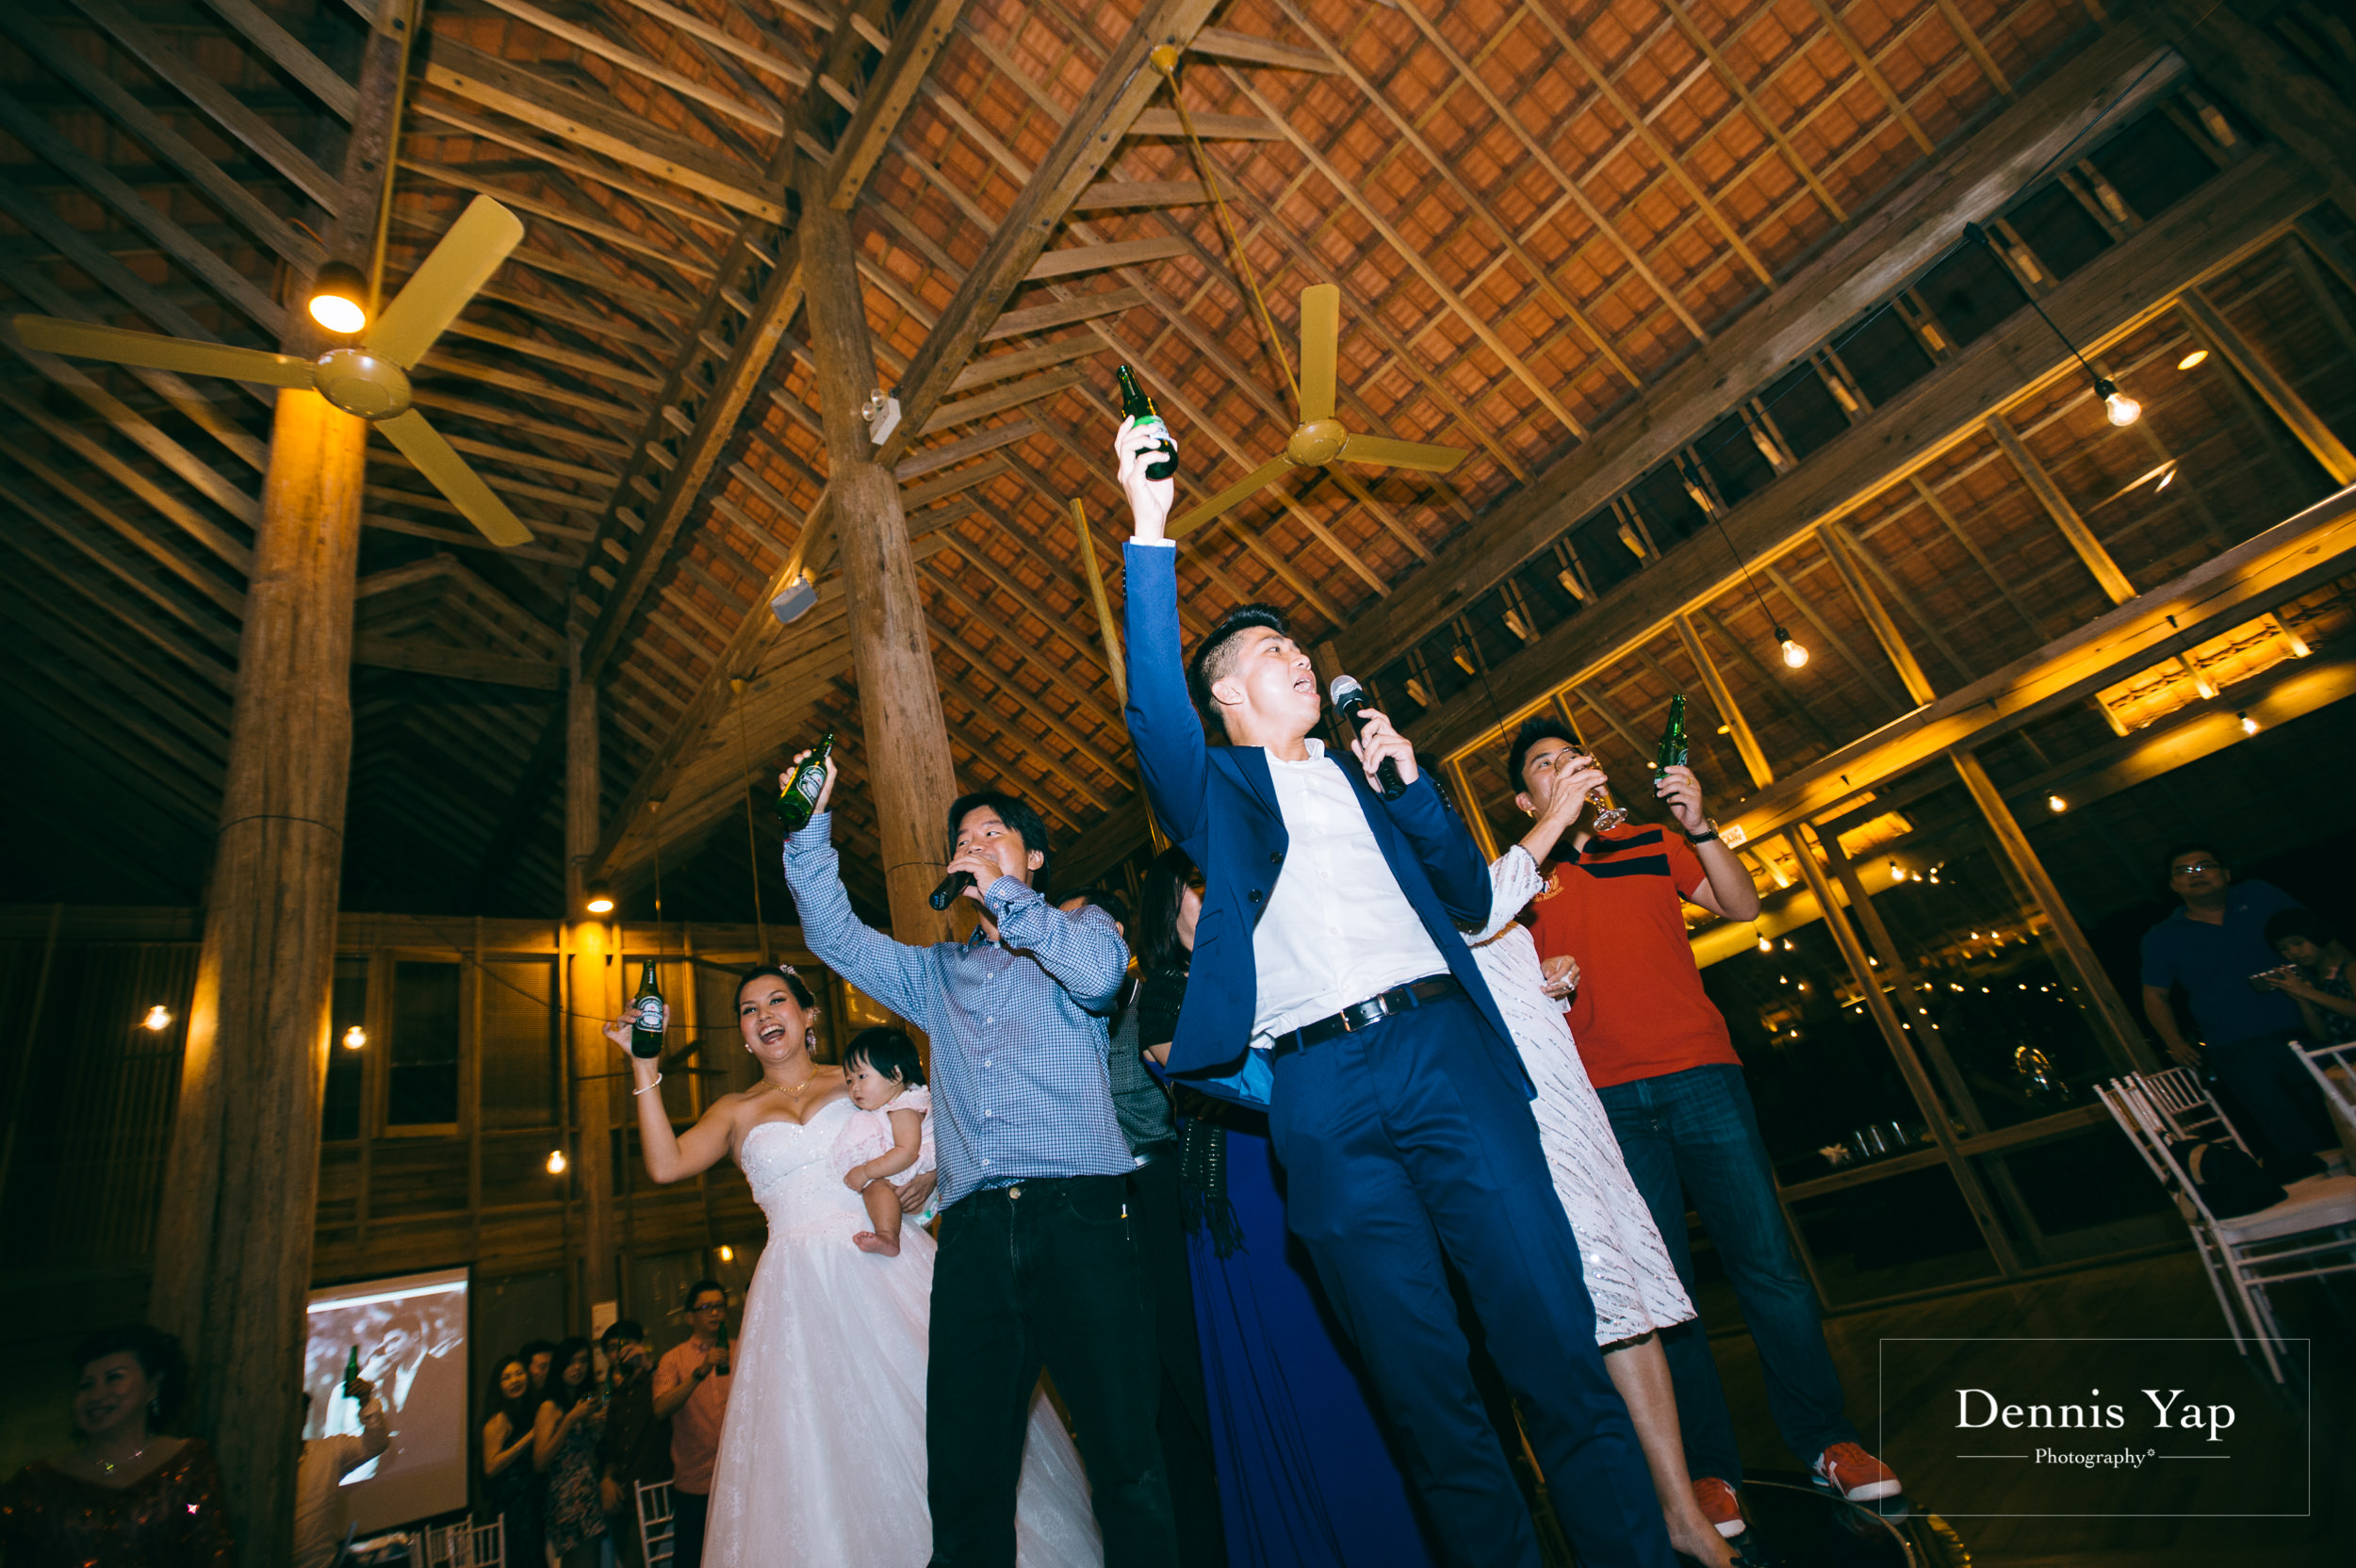 jung munn yein wedding day janda baik endarong dennis yap photography pole dancing malaysia-21.jpg